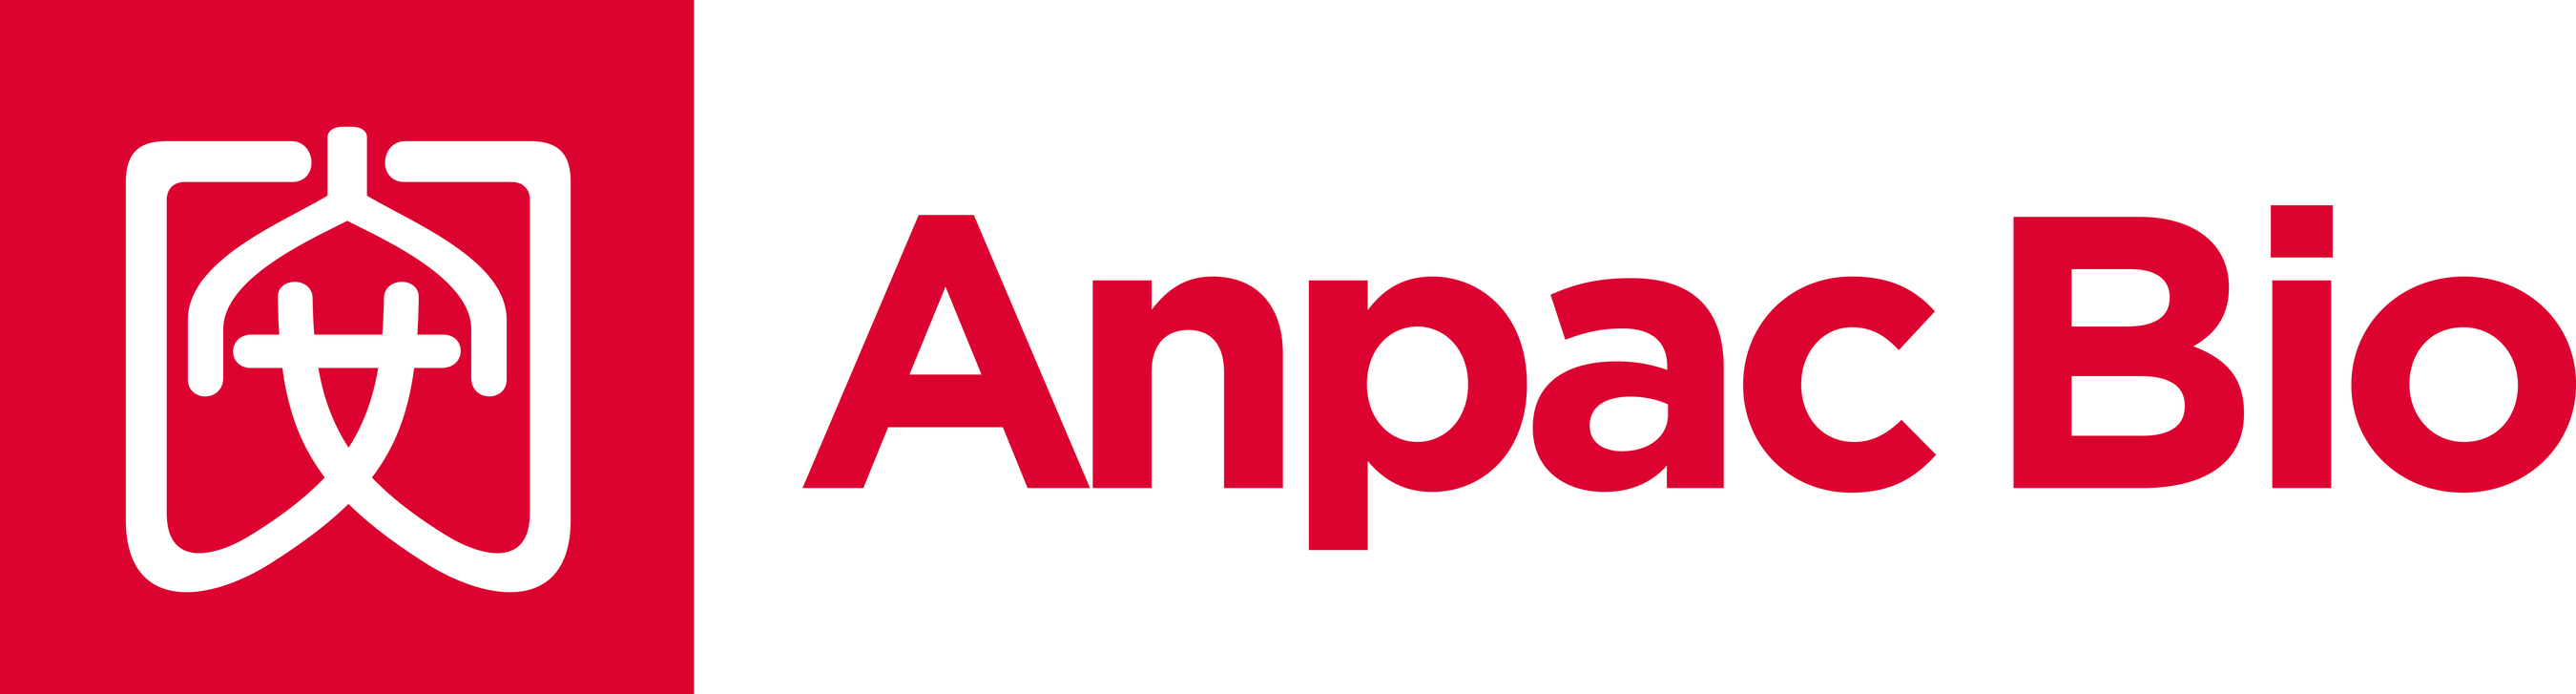 """International life sciences leader Anpac Bio-Medical Science Company has developed breakthrough, proprietary, """"Cancer Differentiation Analysis"""" technology that effectively reinvents cancer screening and early detection. Anpac's proprietary CDA medical devices analyze simple, standard, non-invasive """"Blood Biopsies"""" - resulting in measurably greater early cancer detection sensitivity and specificity, with no harmful side effects in patients. The proven results of 25,000 cases to date demonstrate CDA's research validity achieving an average sensitivity and specificity rate range of 75%-90% for ten different types of cancer -- often identifying the type and location of threatening, diseased cancer cells before they form into tumors."""